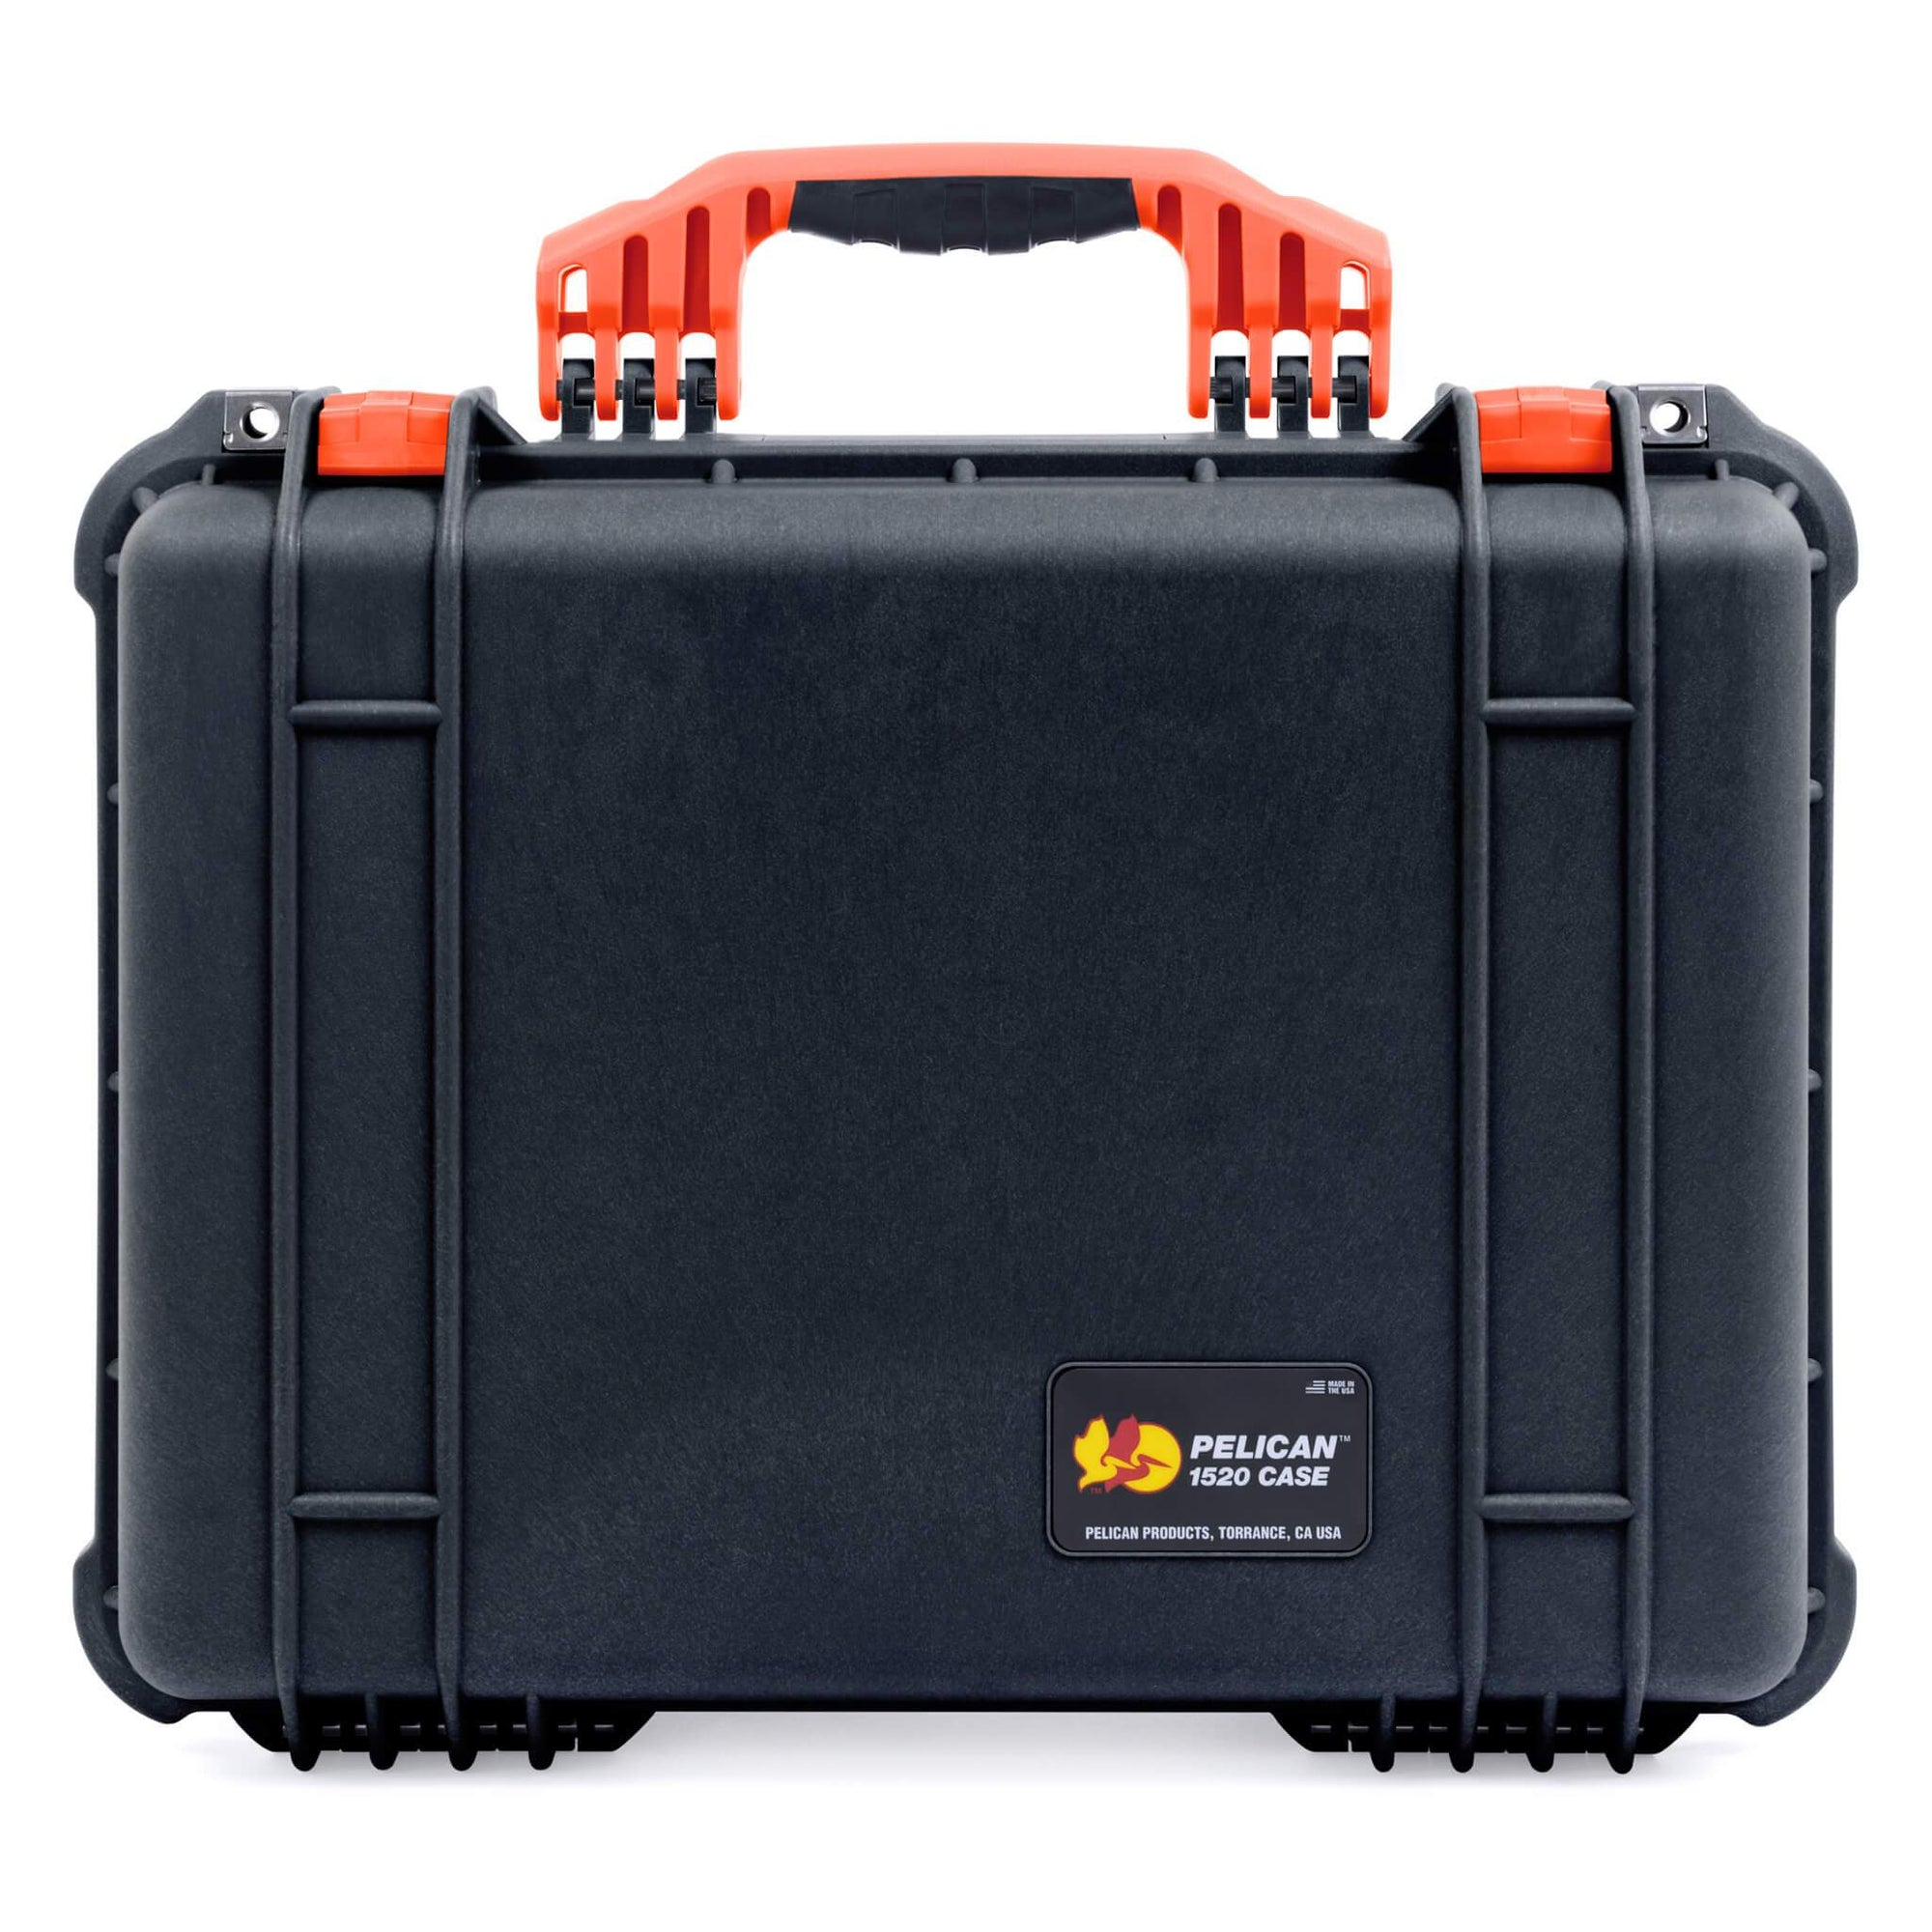 Pelican 1520 Case, Black with Orange Handle & Latches